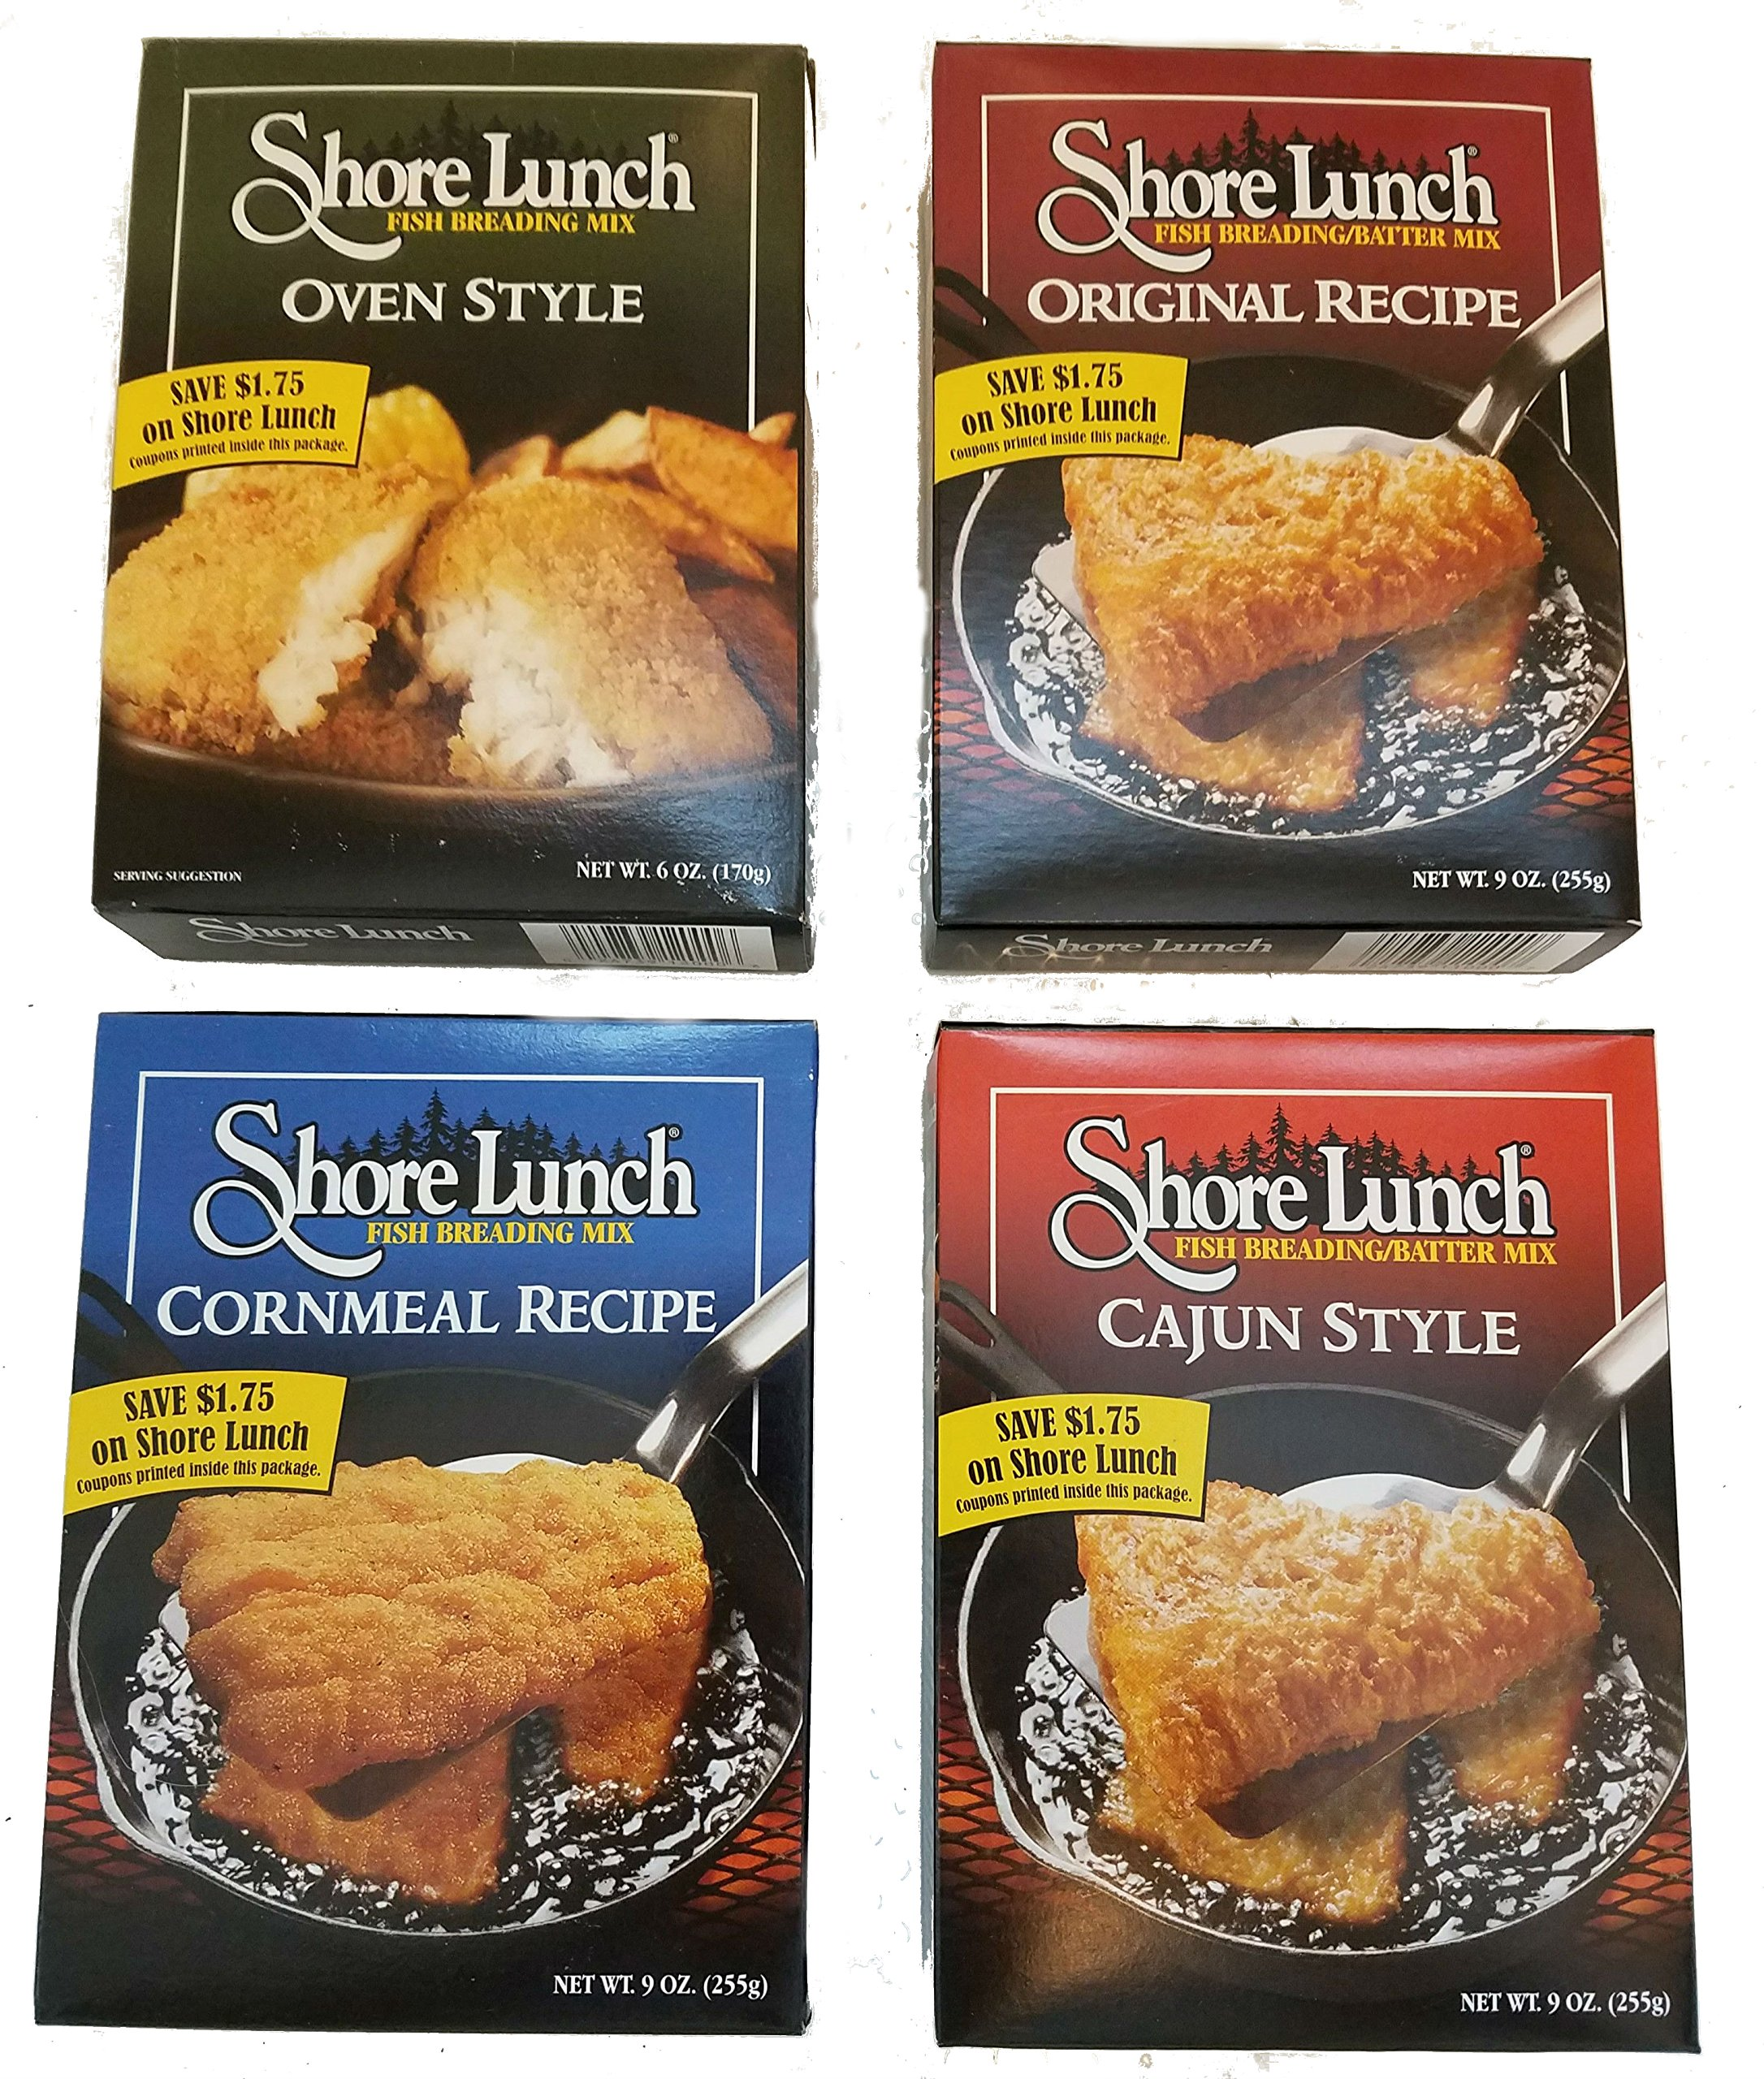 Shore Lunch Fish Breading/Batter 4 Flavor Fish Fry Variety Pack, (1) Each: Original recipe 9 Oz, Cajun Style 9 Oz, Cornmeal Recipe 9 Oz, Oven Style 6 Oz.